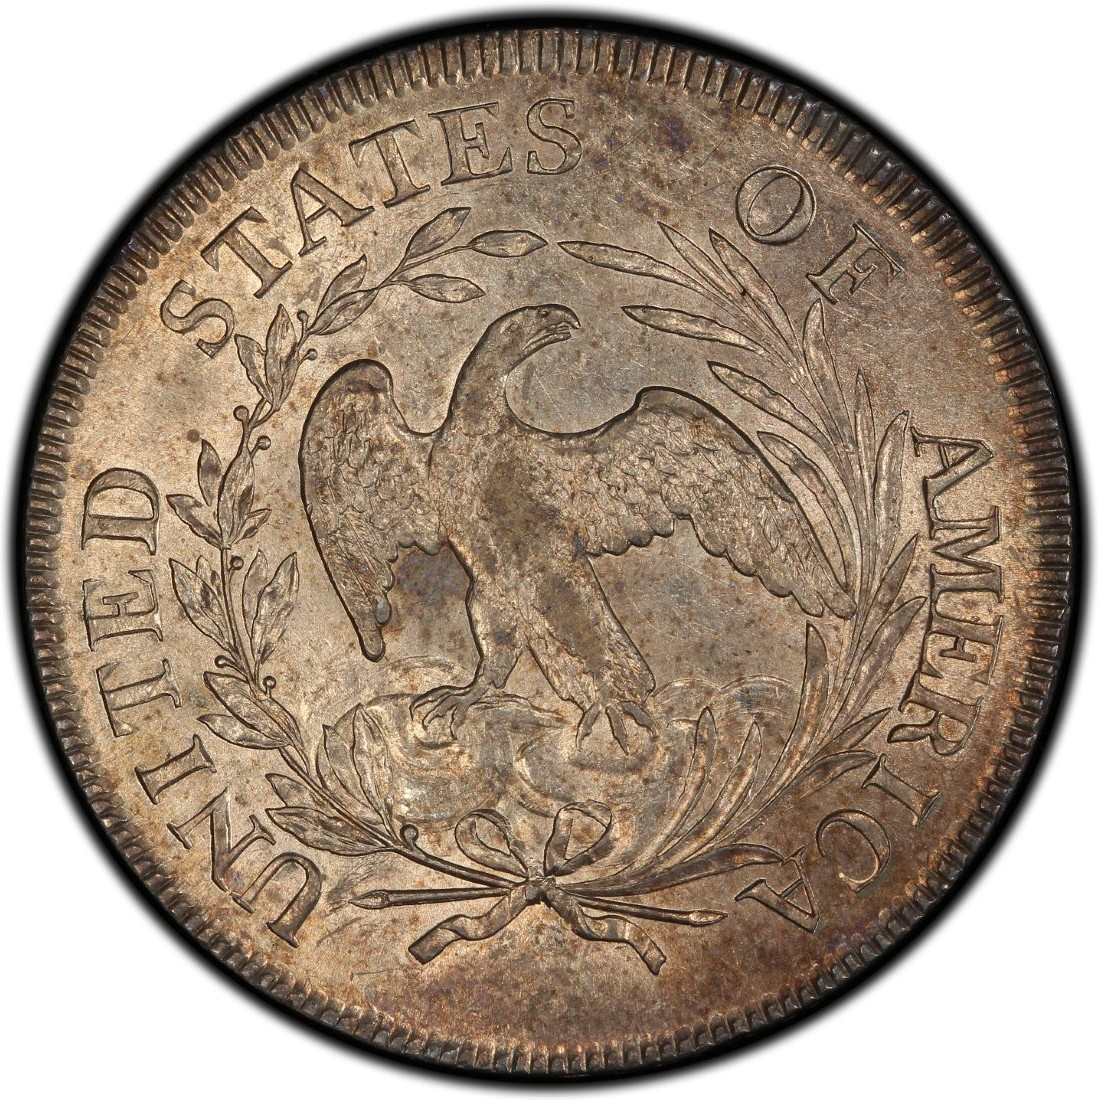 1796 Draped Bust Silver Dollar